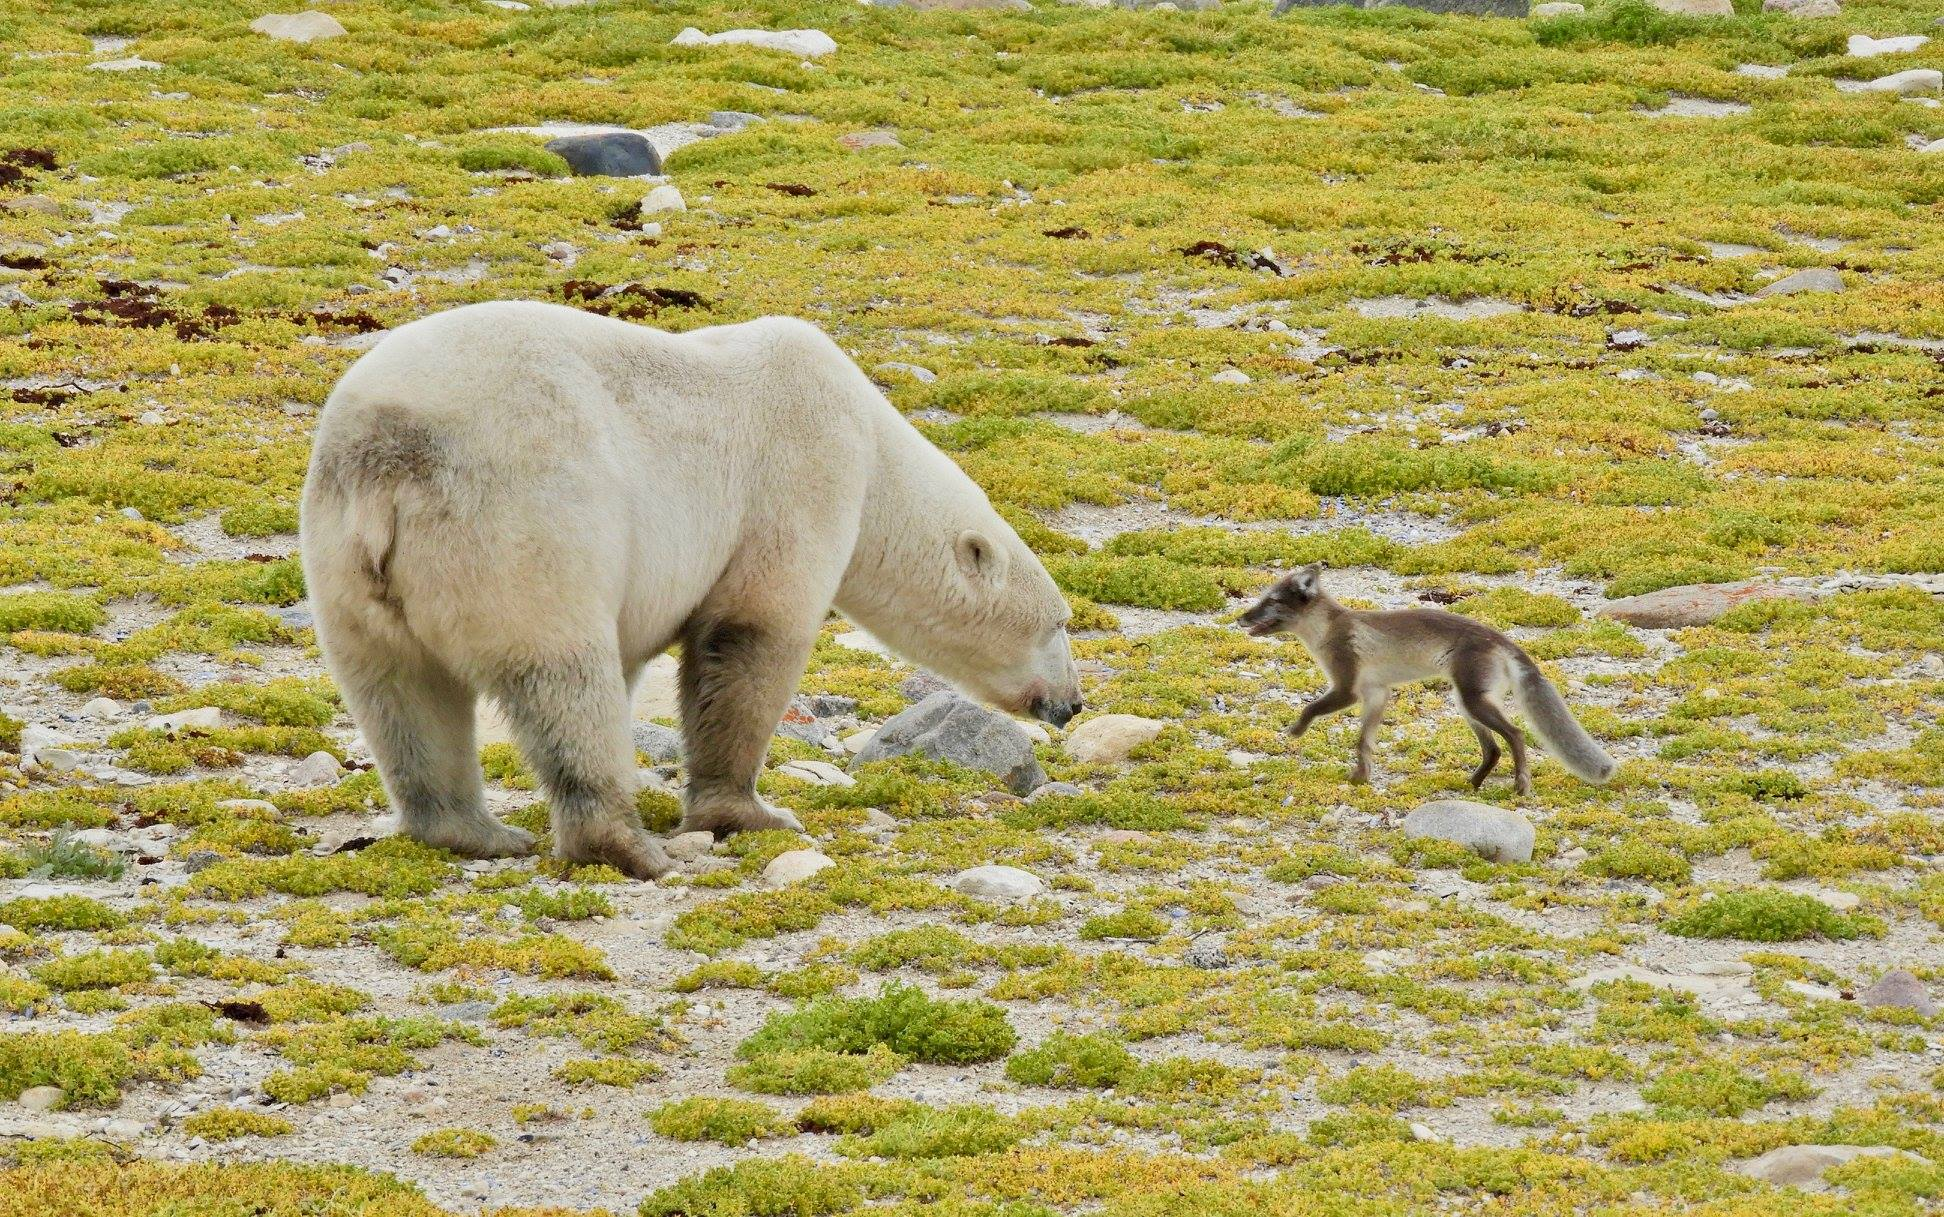 arctic fox and polar bear